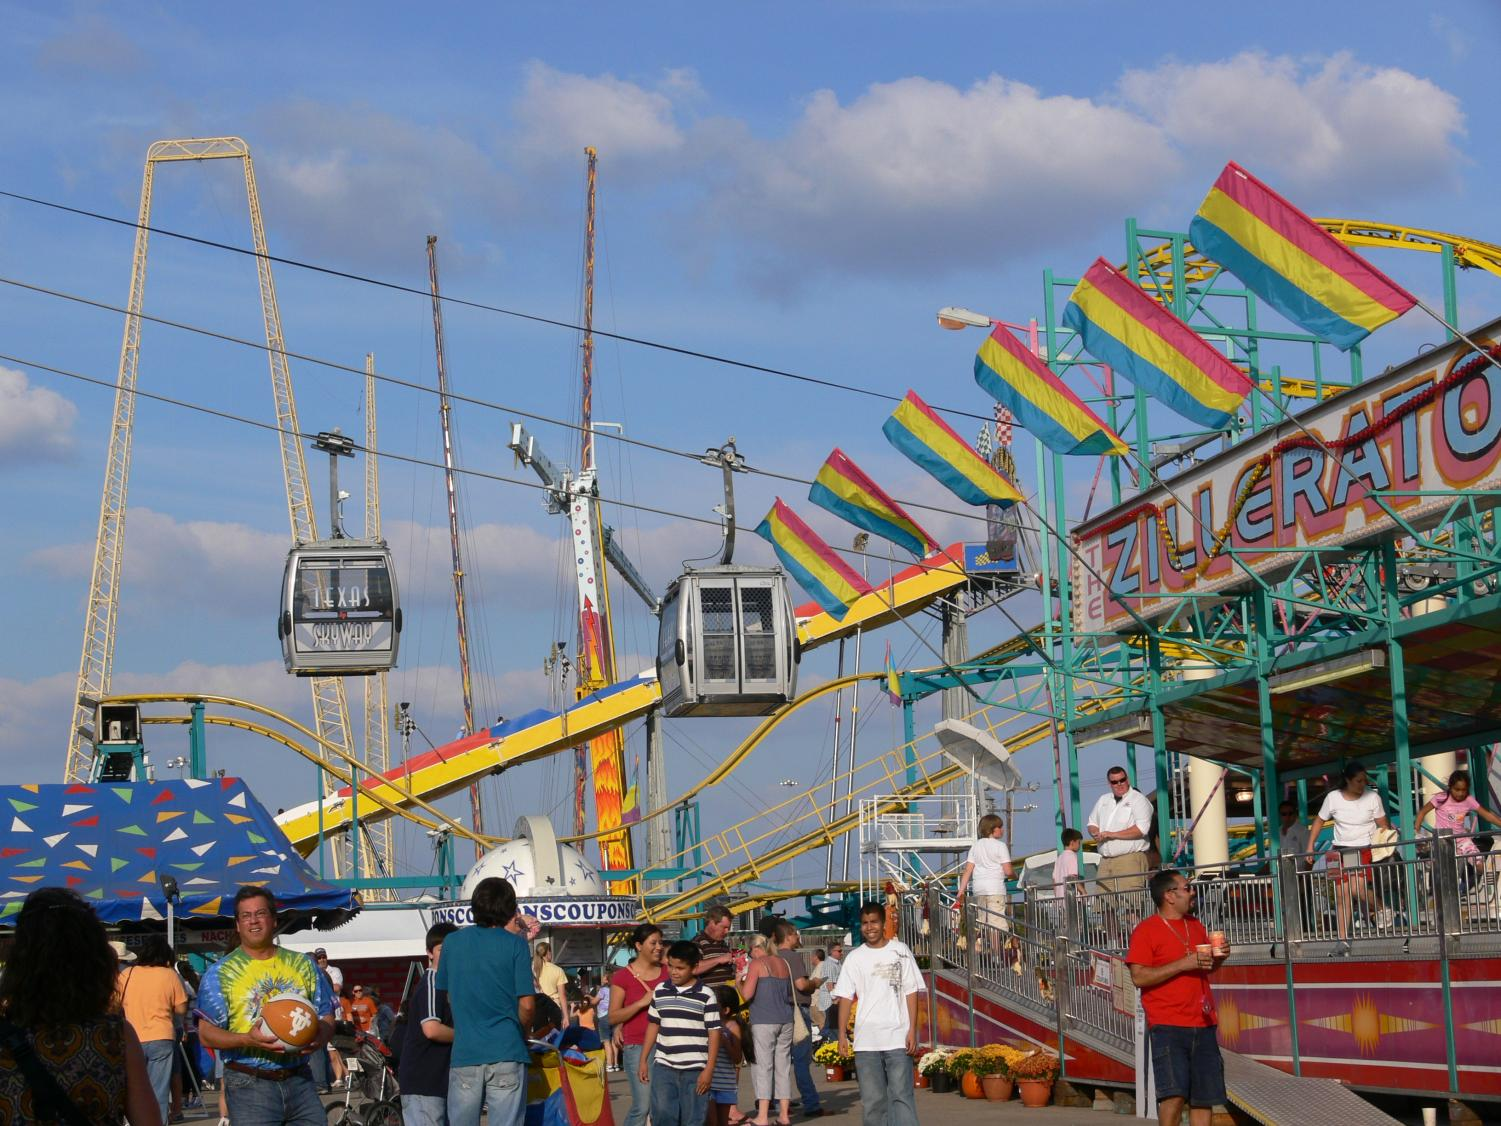 A 133-year-old Tradition// The State Fair of Texas has returned and added more new attractions to it's repertoire. Photo by  Andreas Praefcke from commons.wikimedia.org